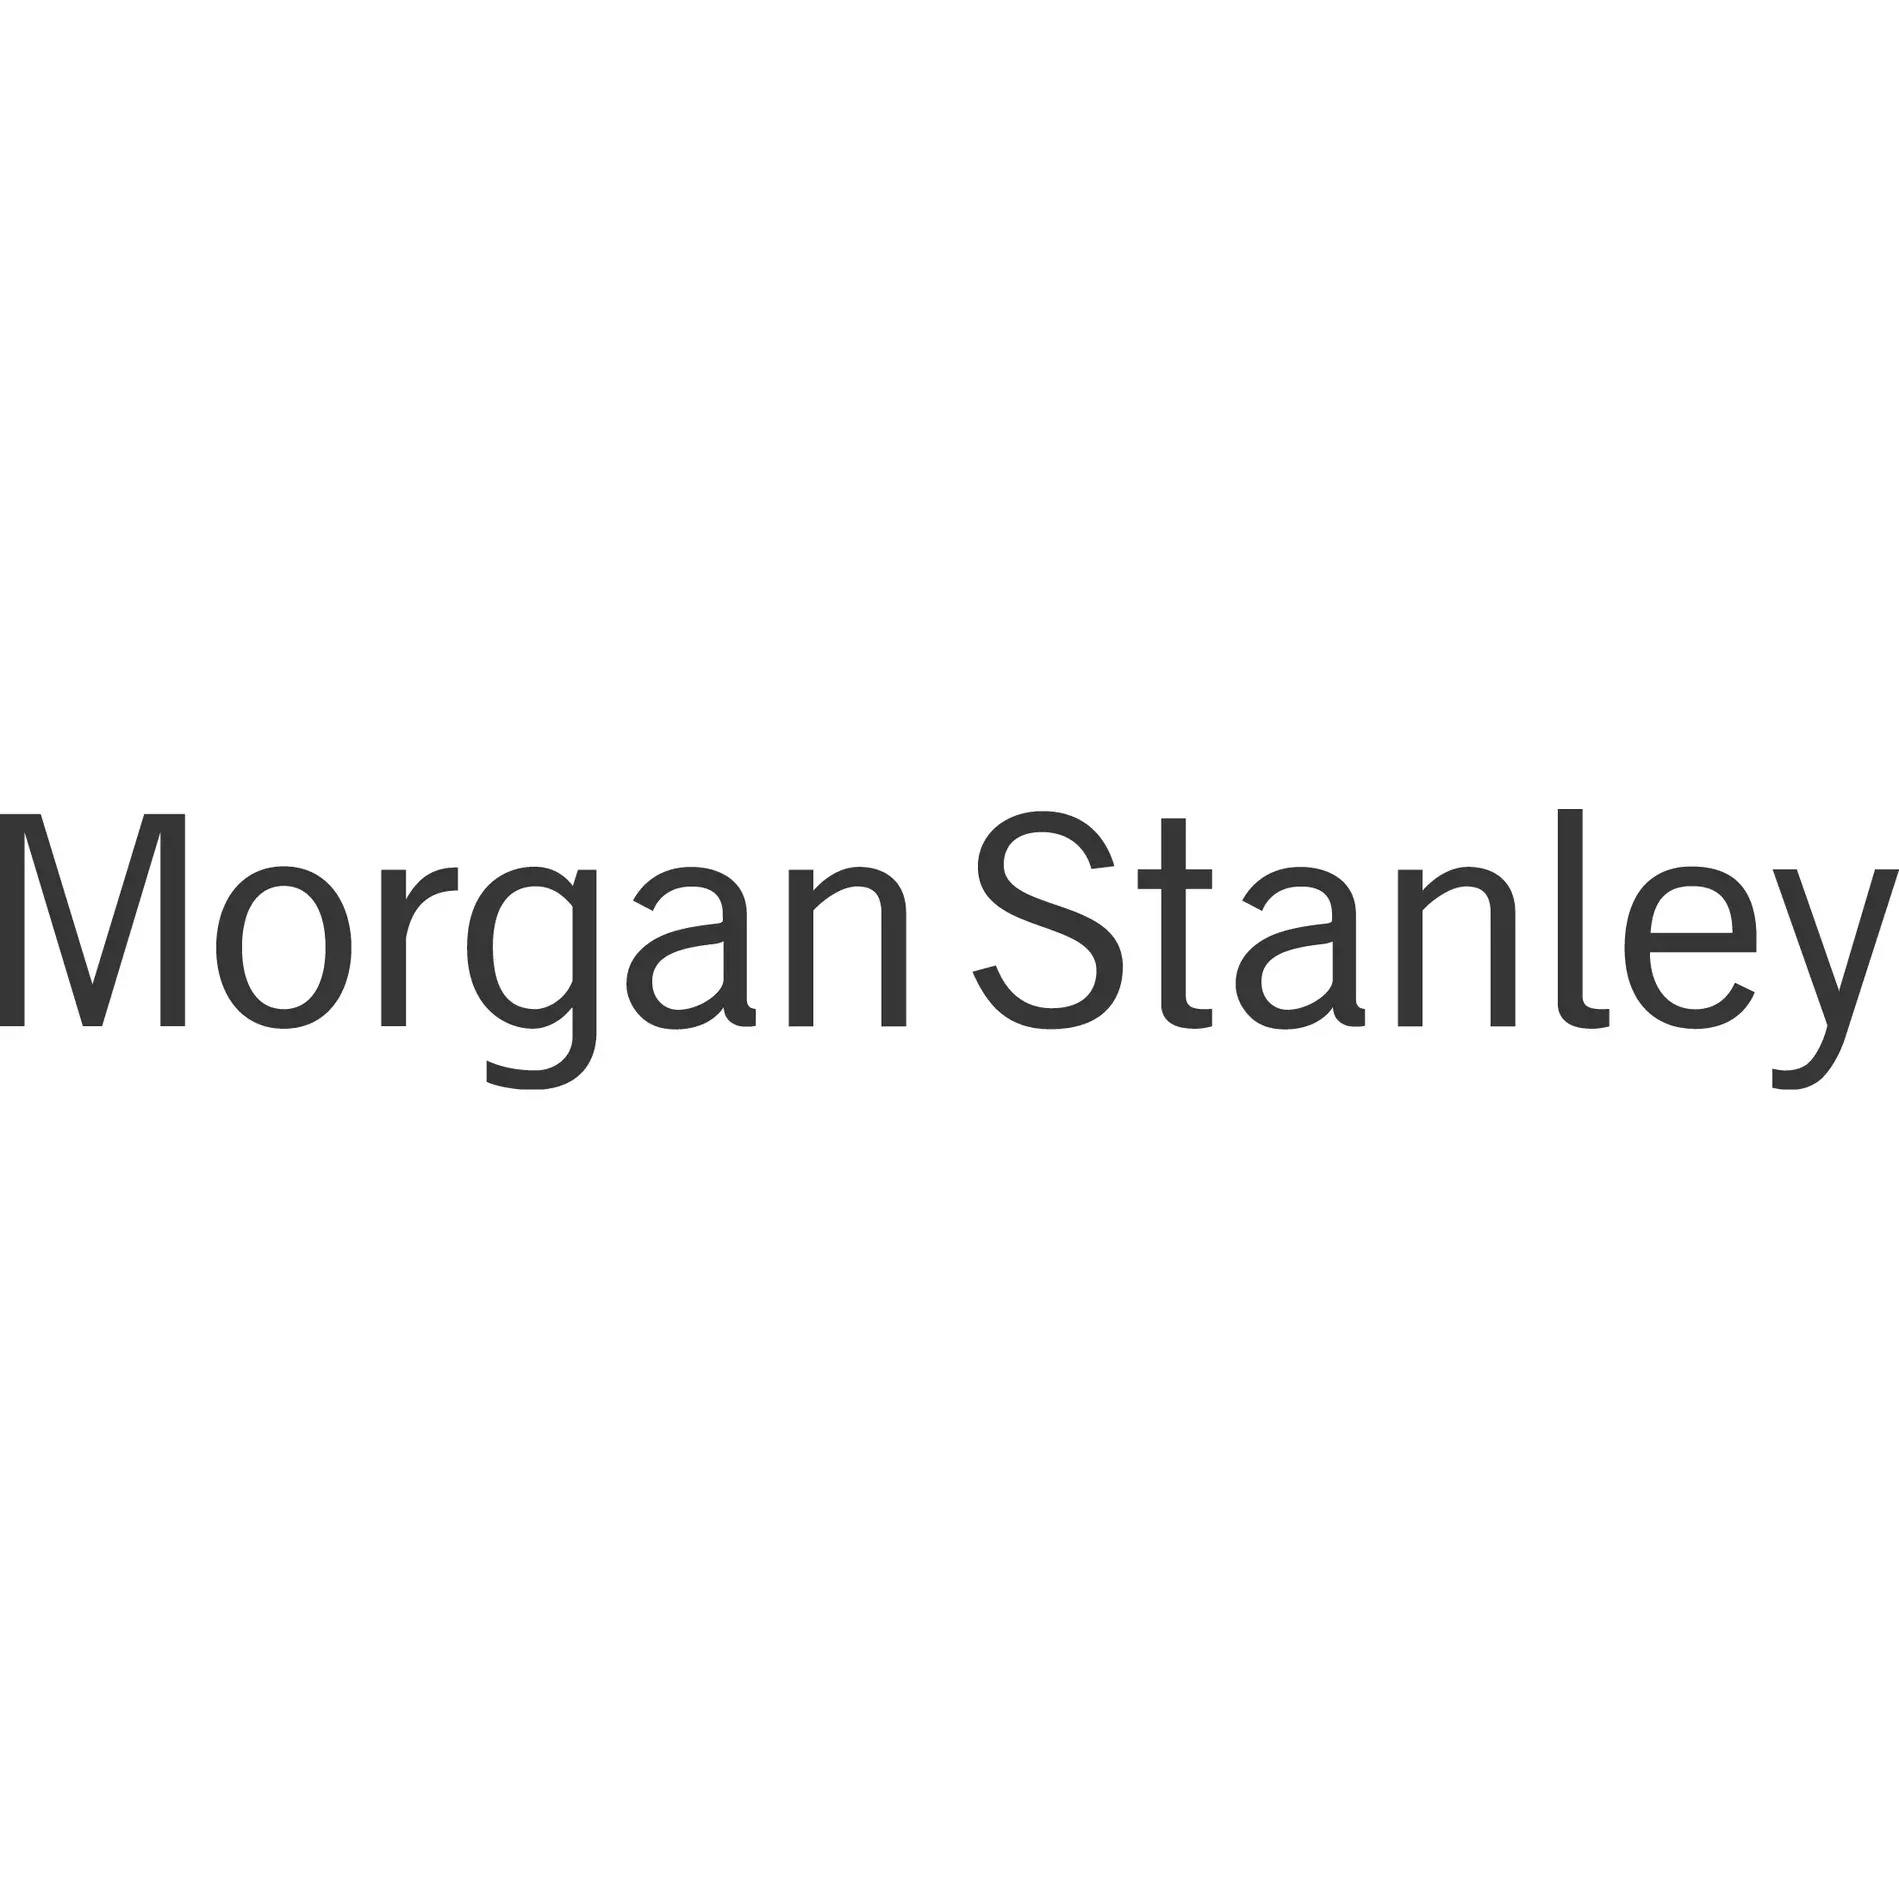 Kevin Johnson - Morgan Stanley | Financial Advisor in Naples,Florida